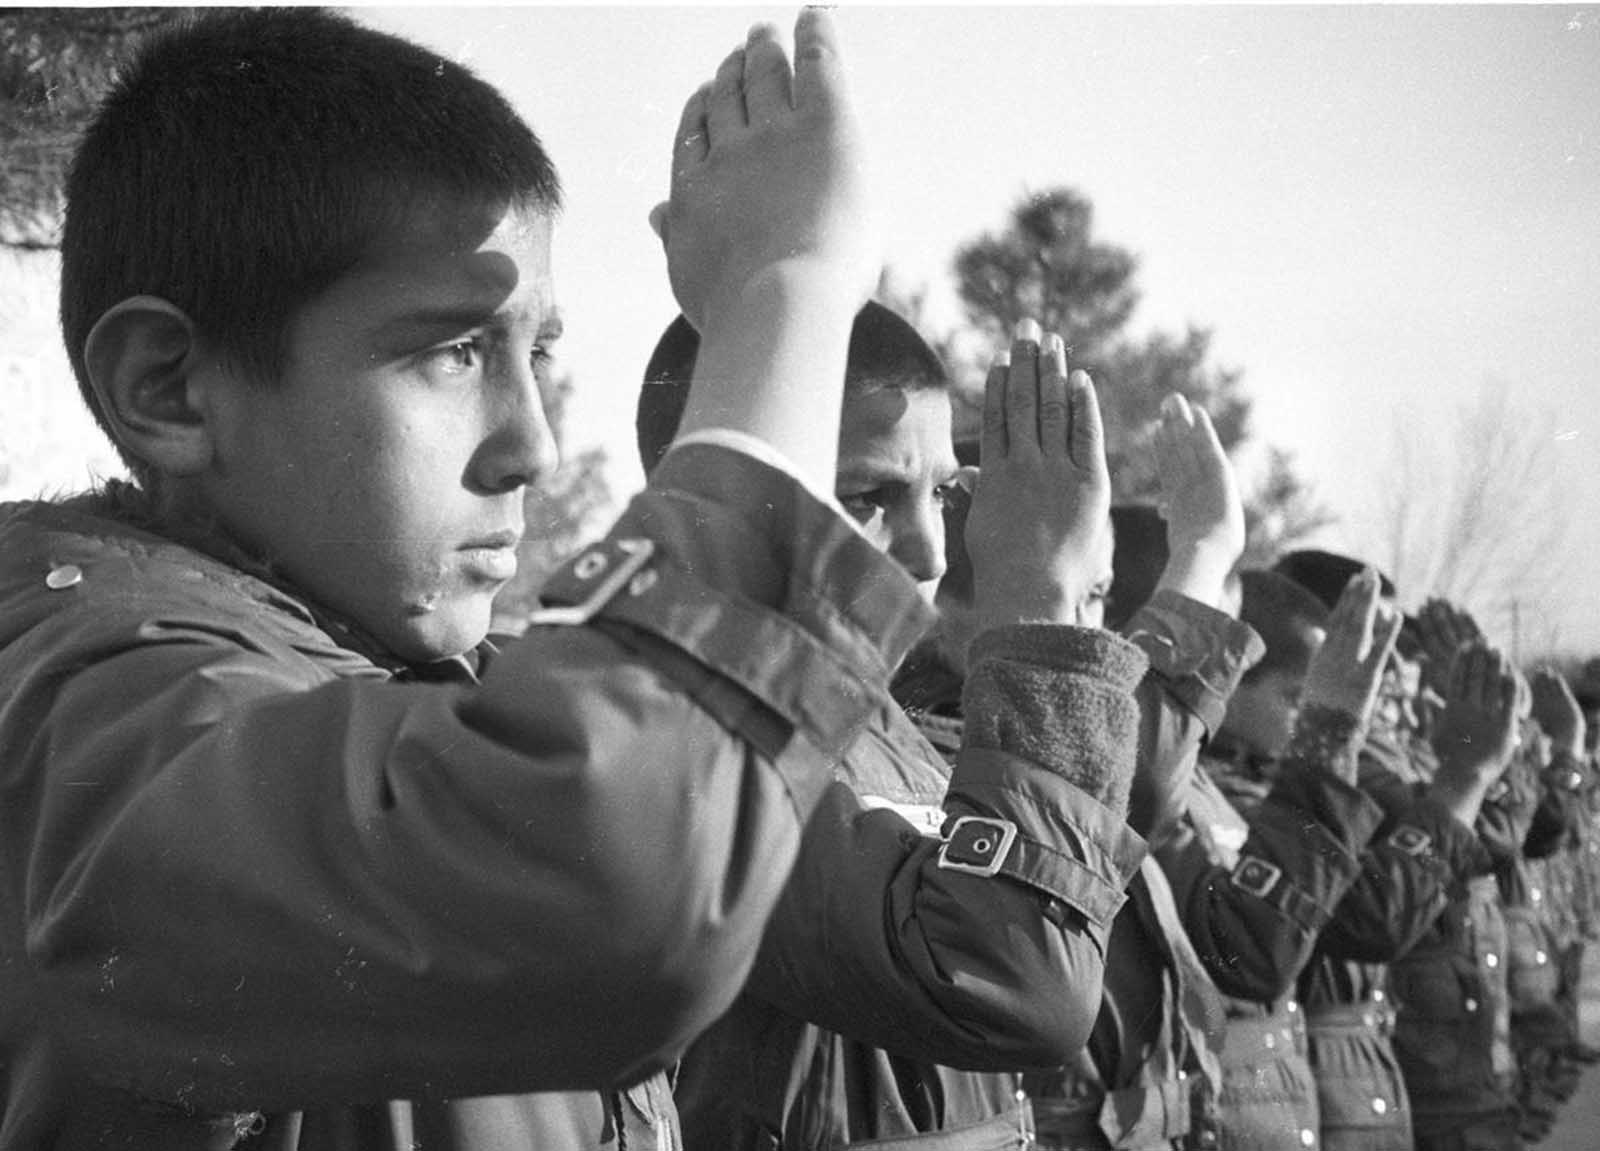 Afghan boys orphaned by the war between Kabul's Soviet-backed government and Muslim rebels salute visitors at the Watan ('Homeland') Nursery in Kabul on January 20, 1986. Communist political education started young in Kabul schools during the occupation, as part of the government's drive to win the population over.